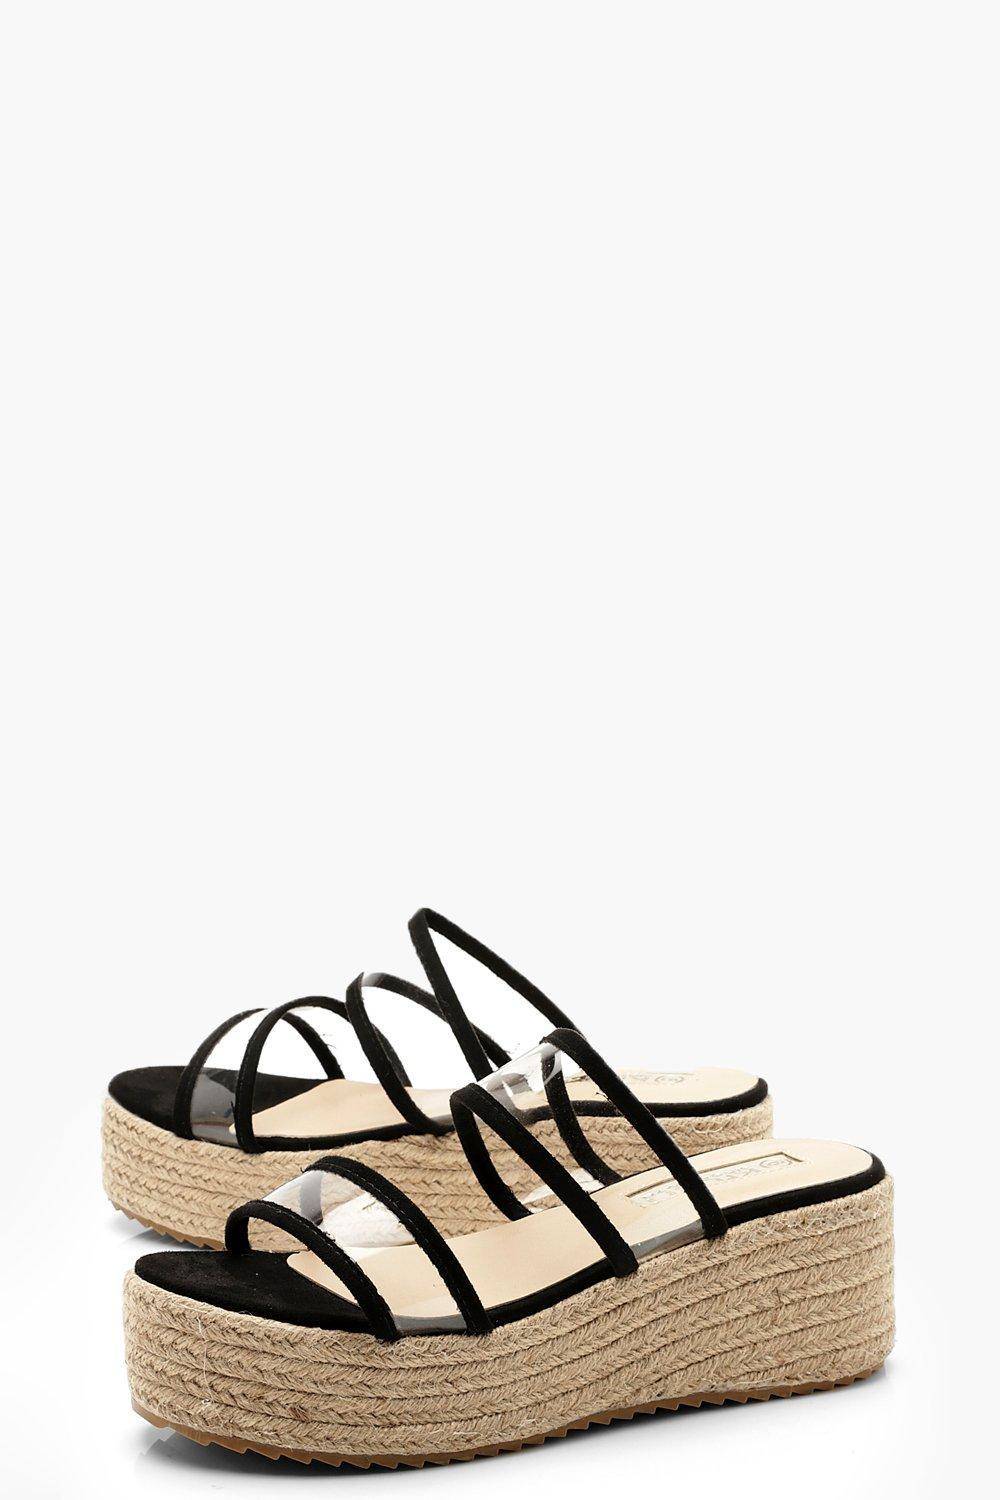 560bb5ad1ce Boohoo - Black Clear Panel Espadrille Flatforms - Lyst. View fullscreen